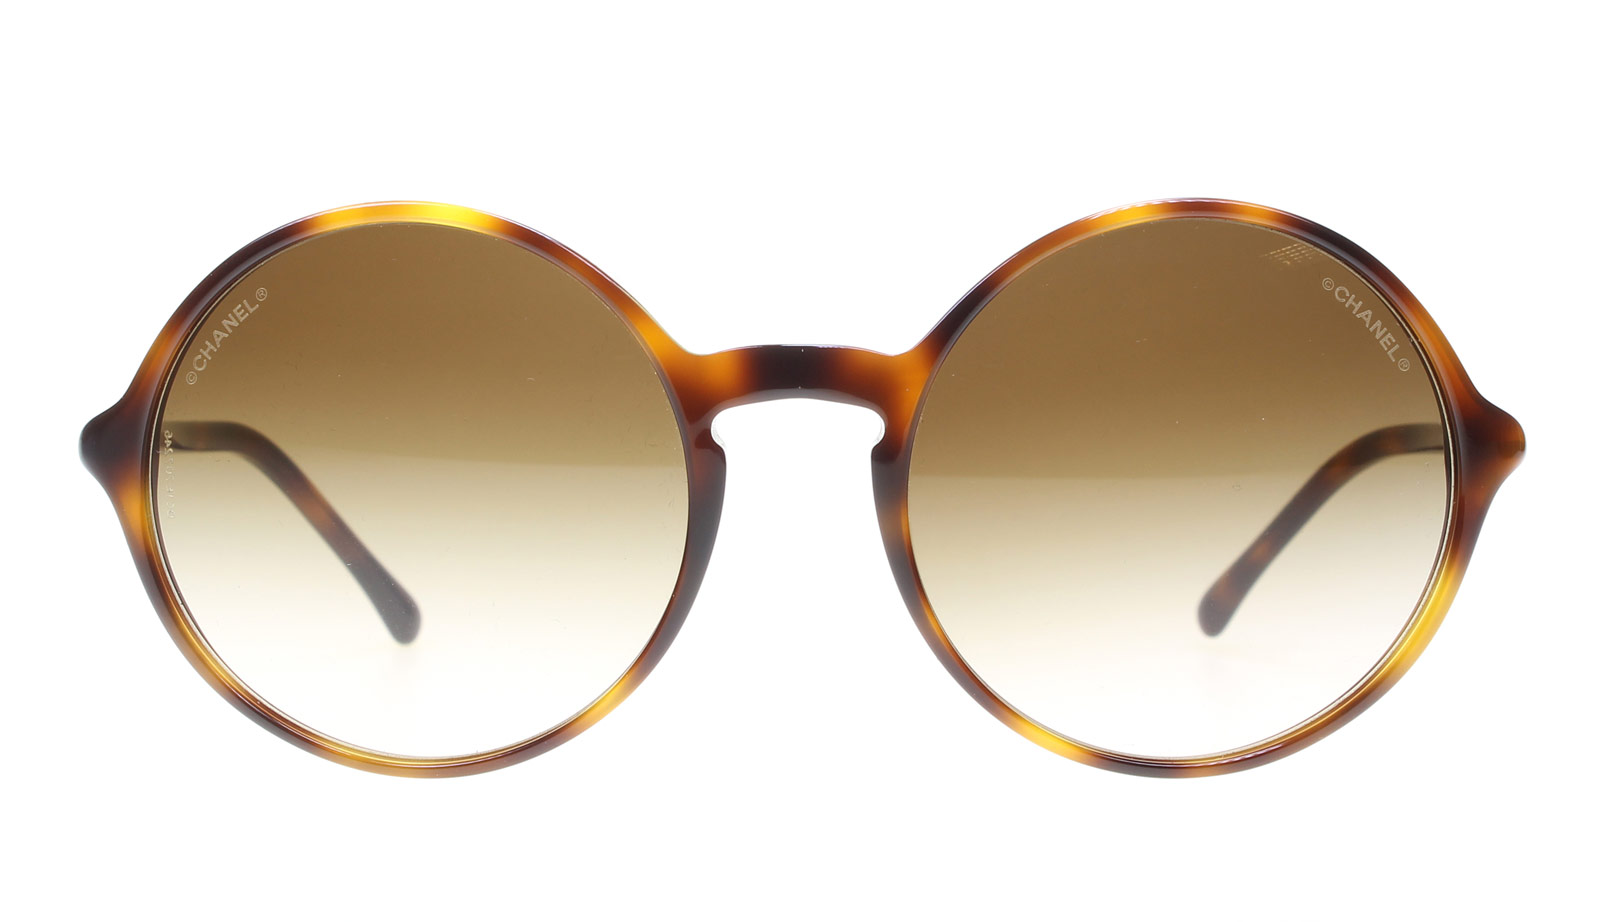 Designer-Shades-From-The-Sunglasses-Shop